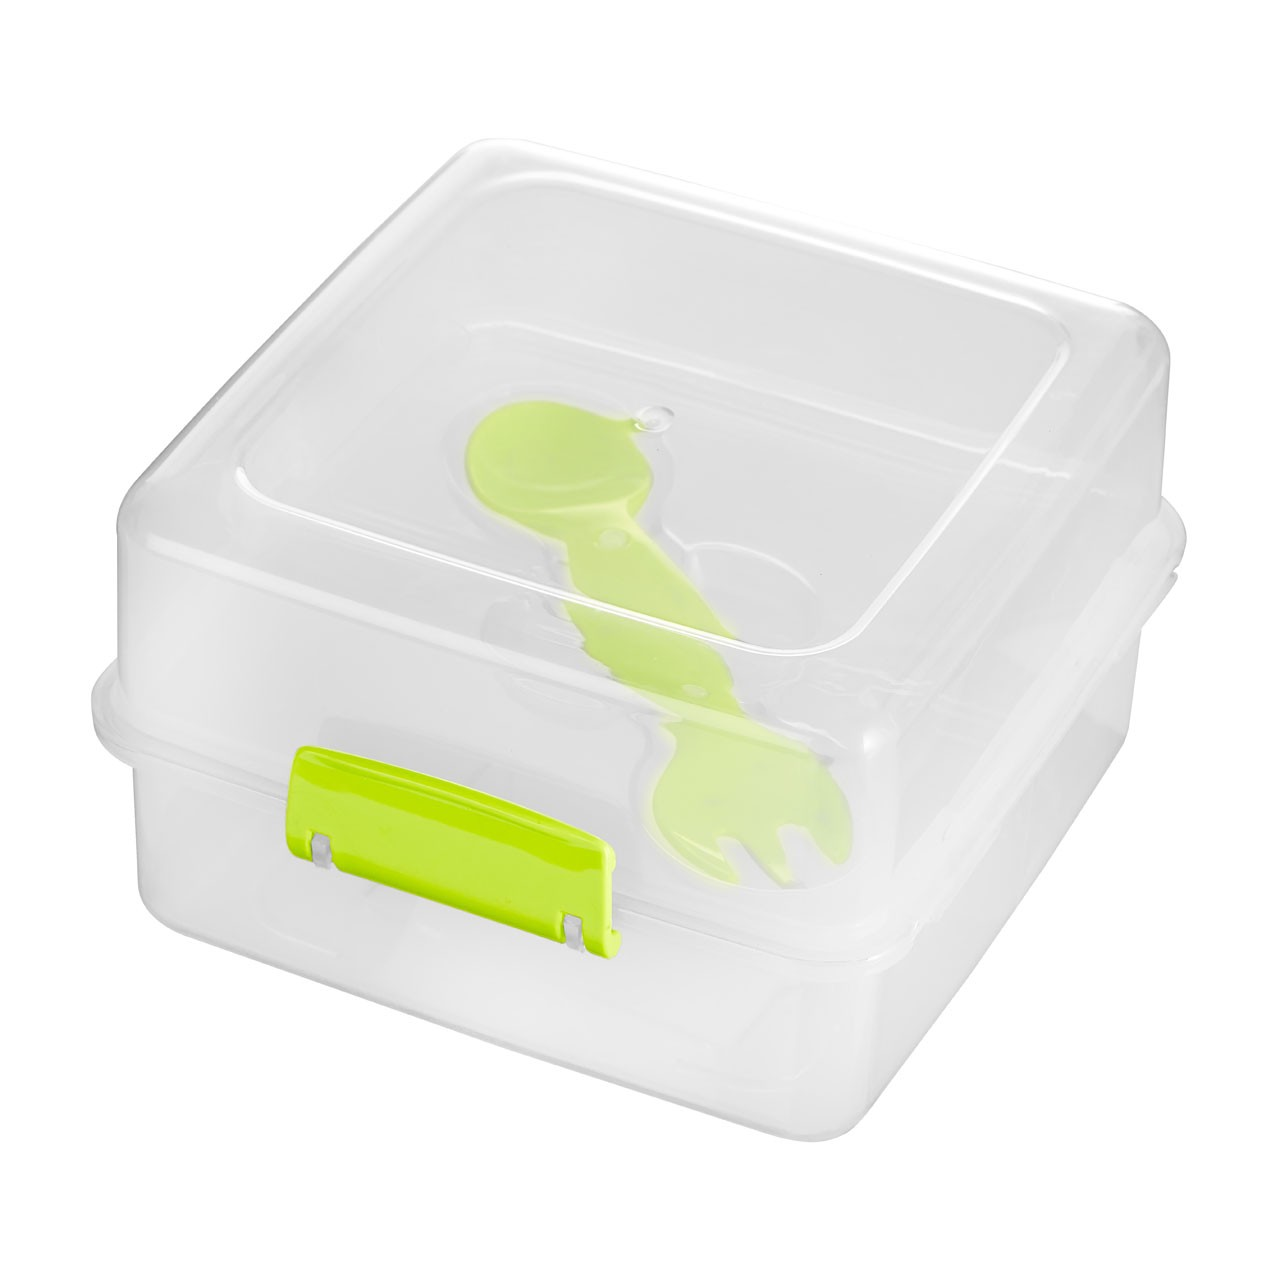 Grub Tub Lunch Box PPRC 2 Compartments / Cutlery